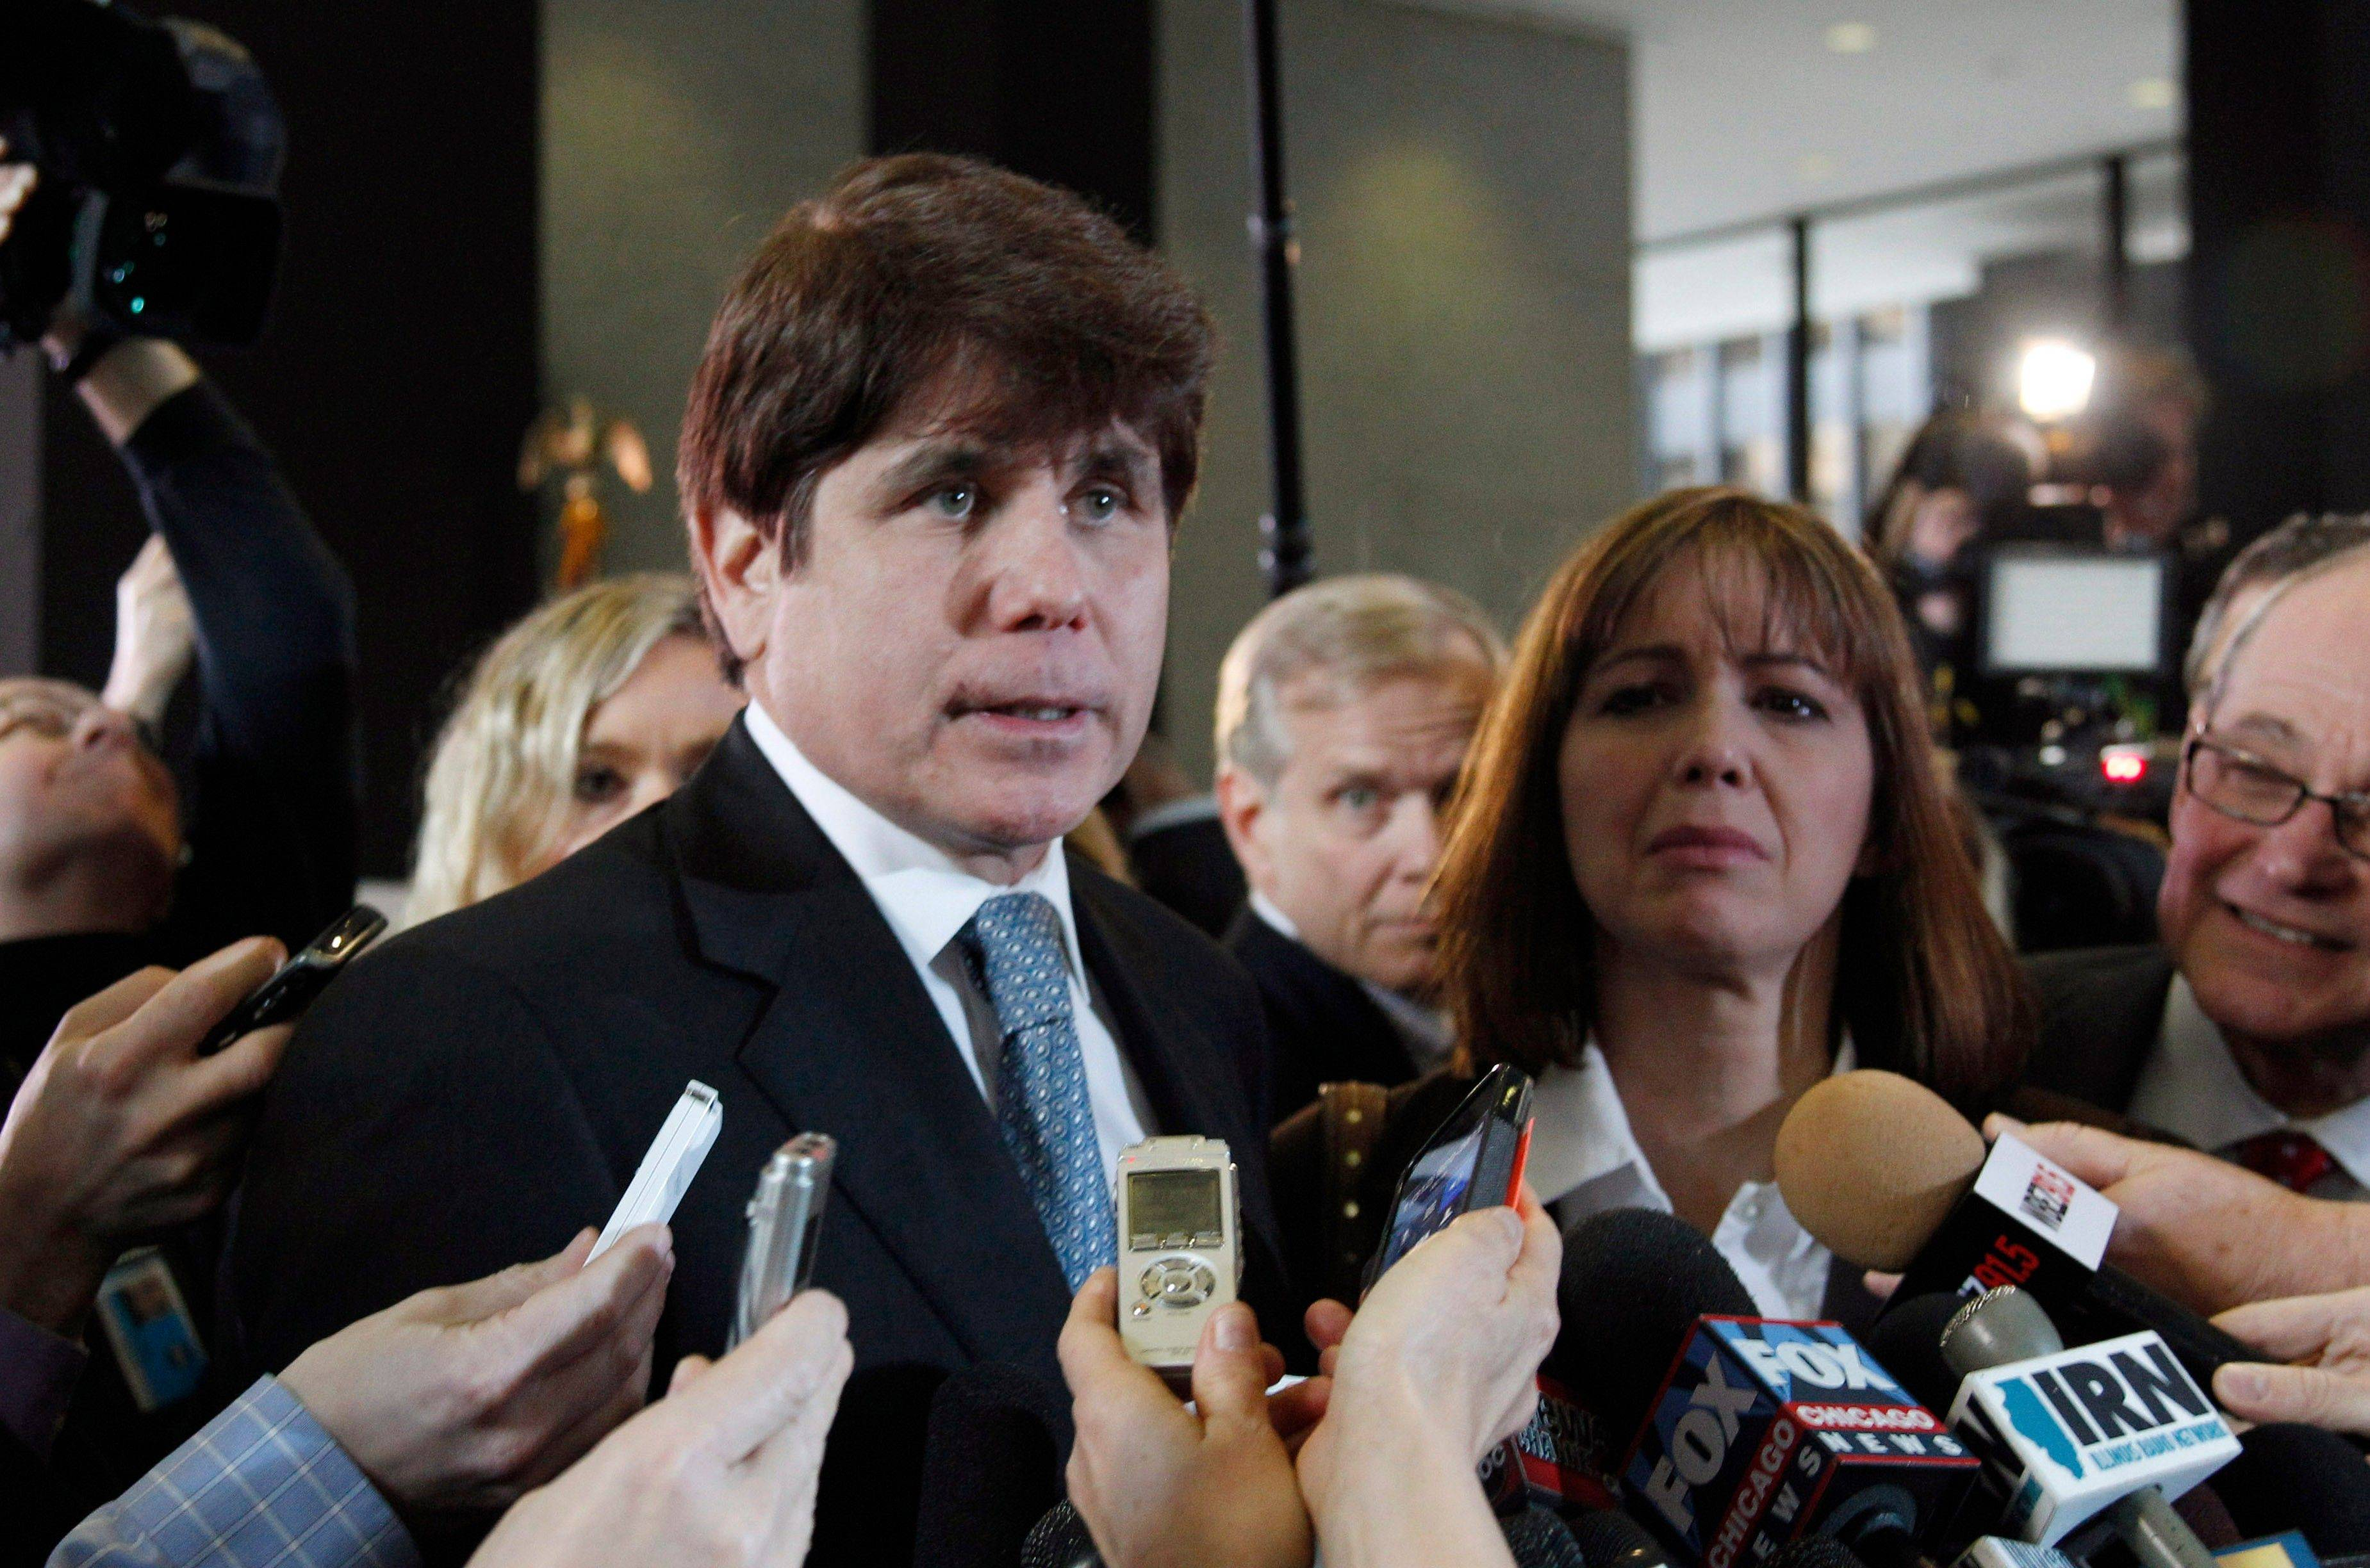 Blagojevich hopes to enter prison with 'dignity'